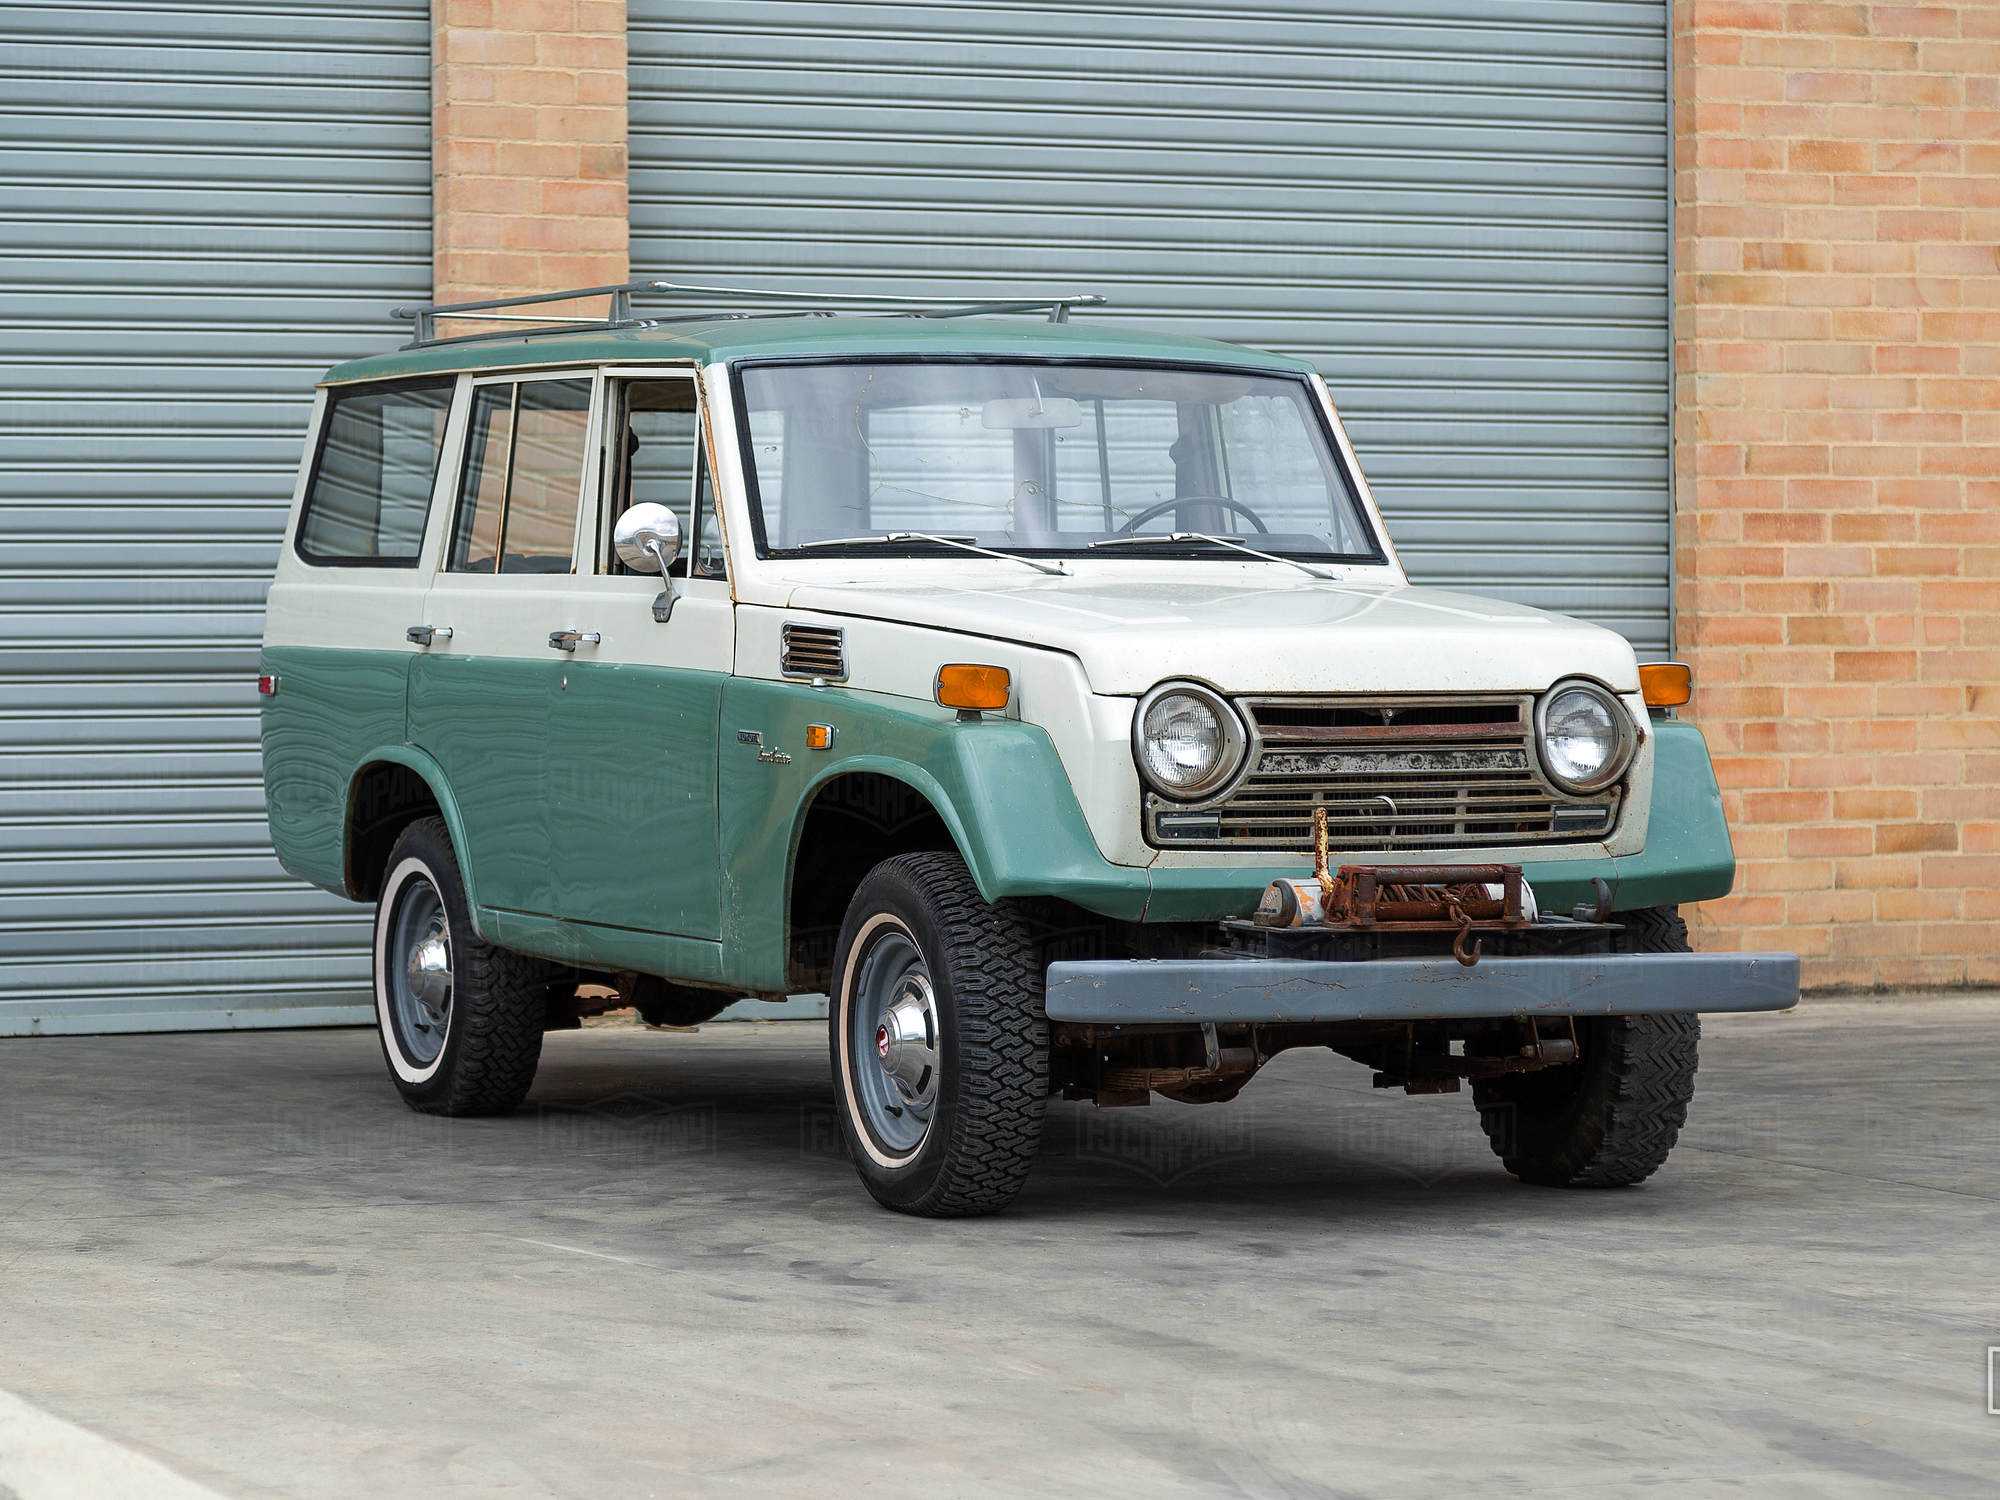 The Iron Pig - 1972 Toyota Land Cruiser FJ55